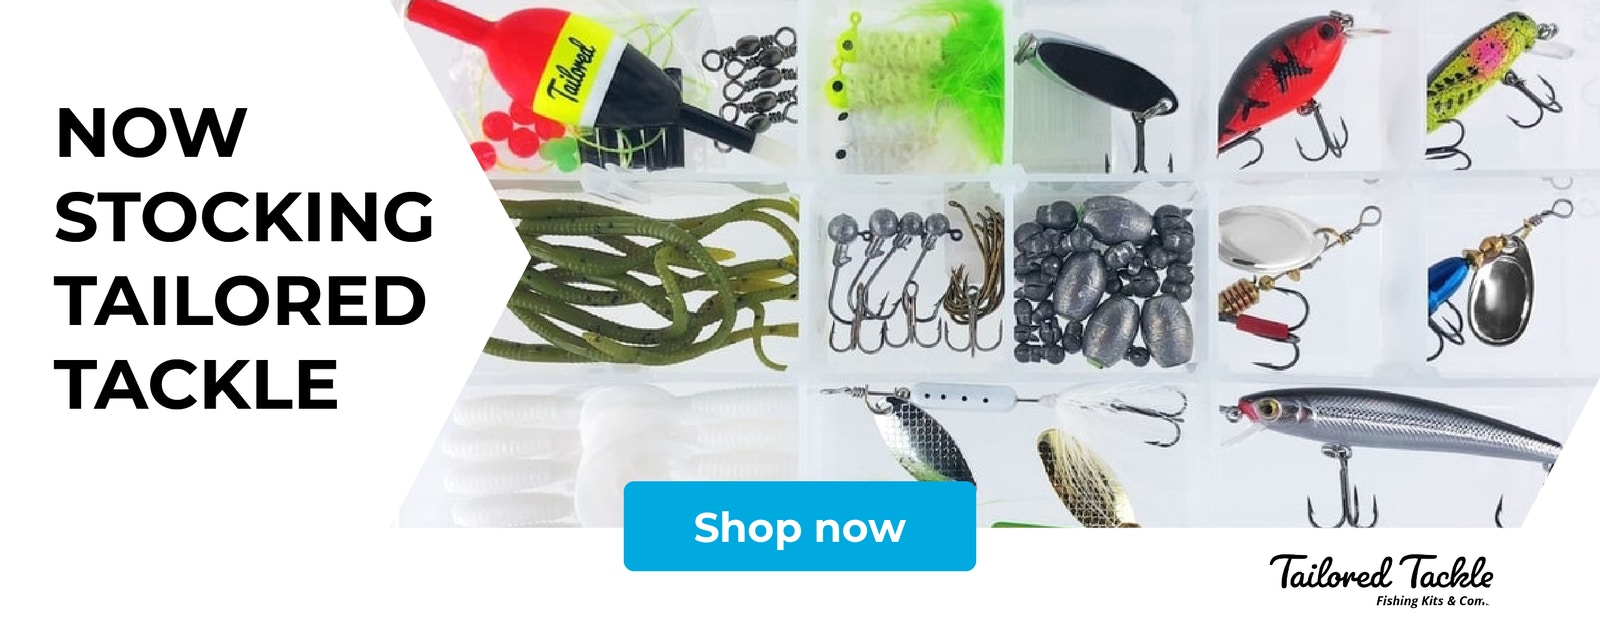 Now stocking Tailored Tackle